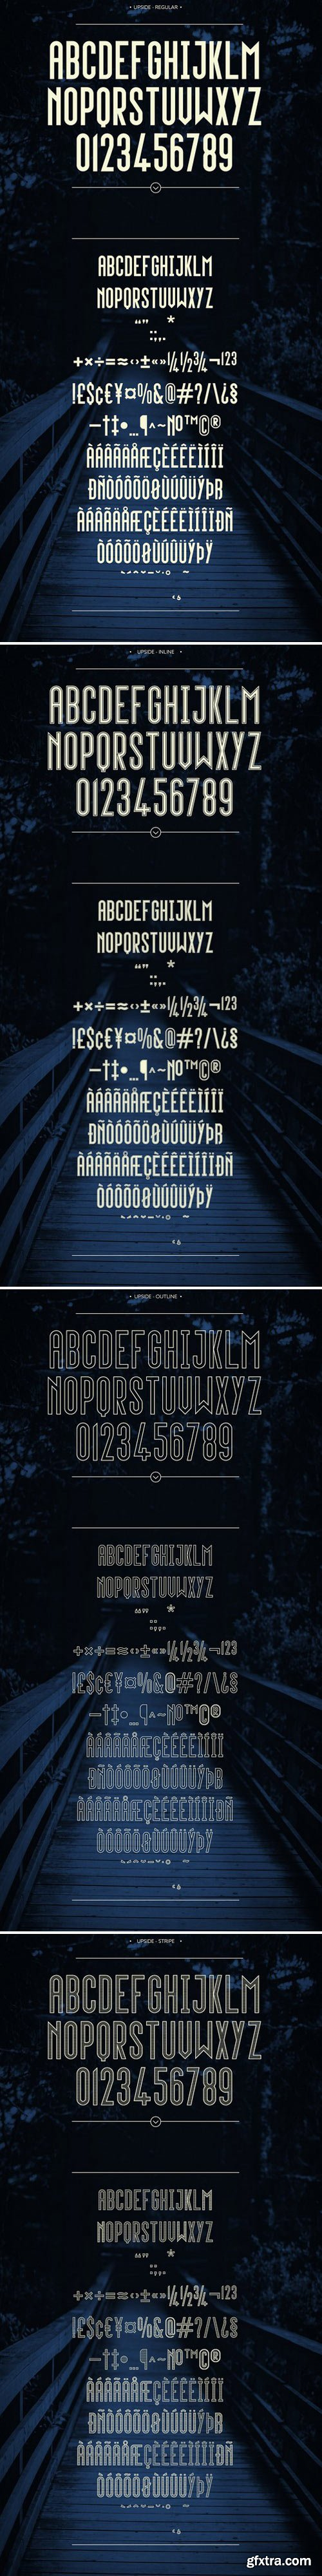 CM - Upside - Complete Family (4 fonts) 1647981